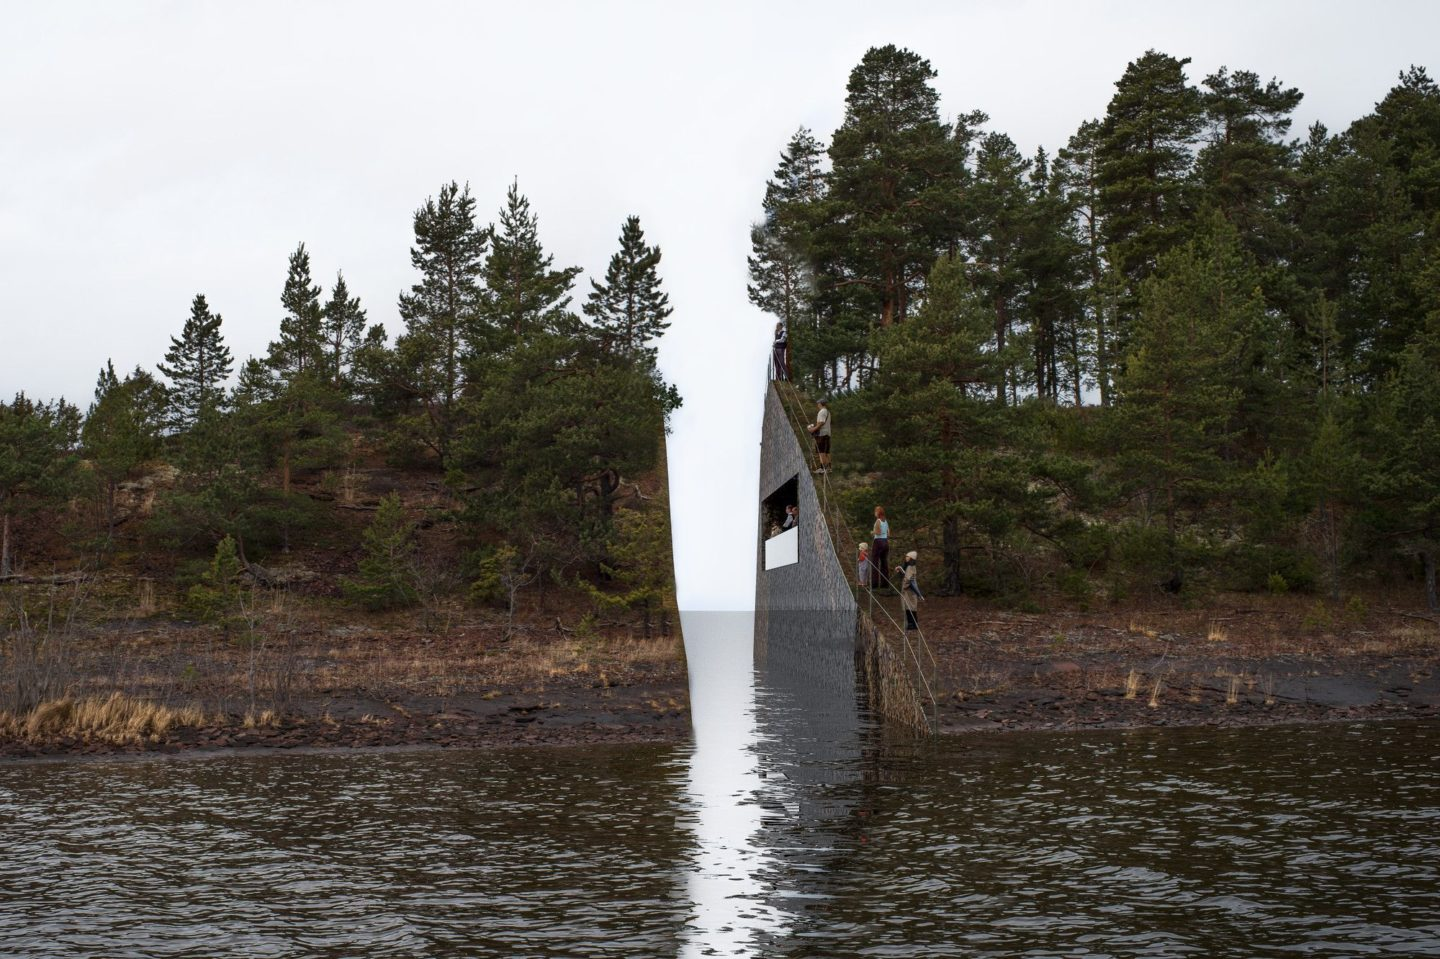 Jonas Dahlberg, projekt Memory Wound - upamiętnienie ofiar zamachów 22 lipca 2011, jezioro Tyrifjorden, / Memory Wound project – commemoration of the victims of the attacks on 22nd of July 2011, Tyrifjorden lake 2013-2014.